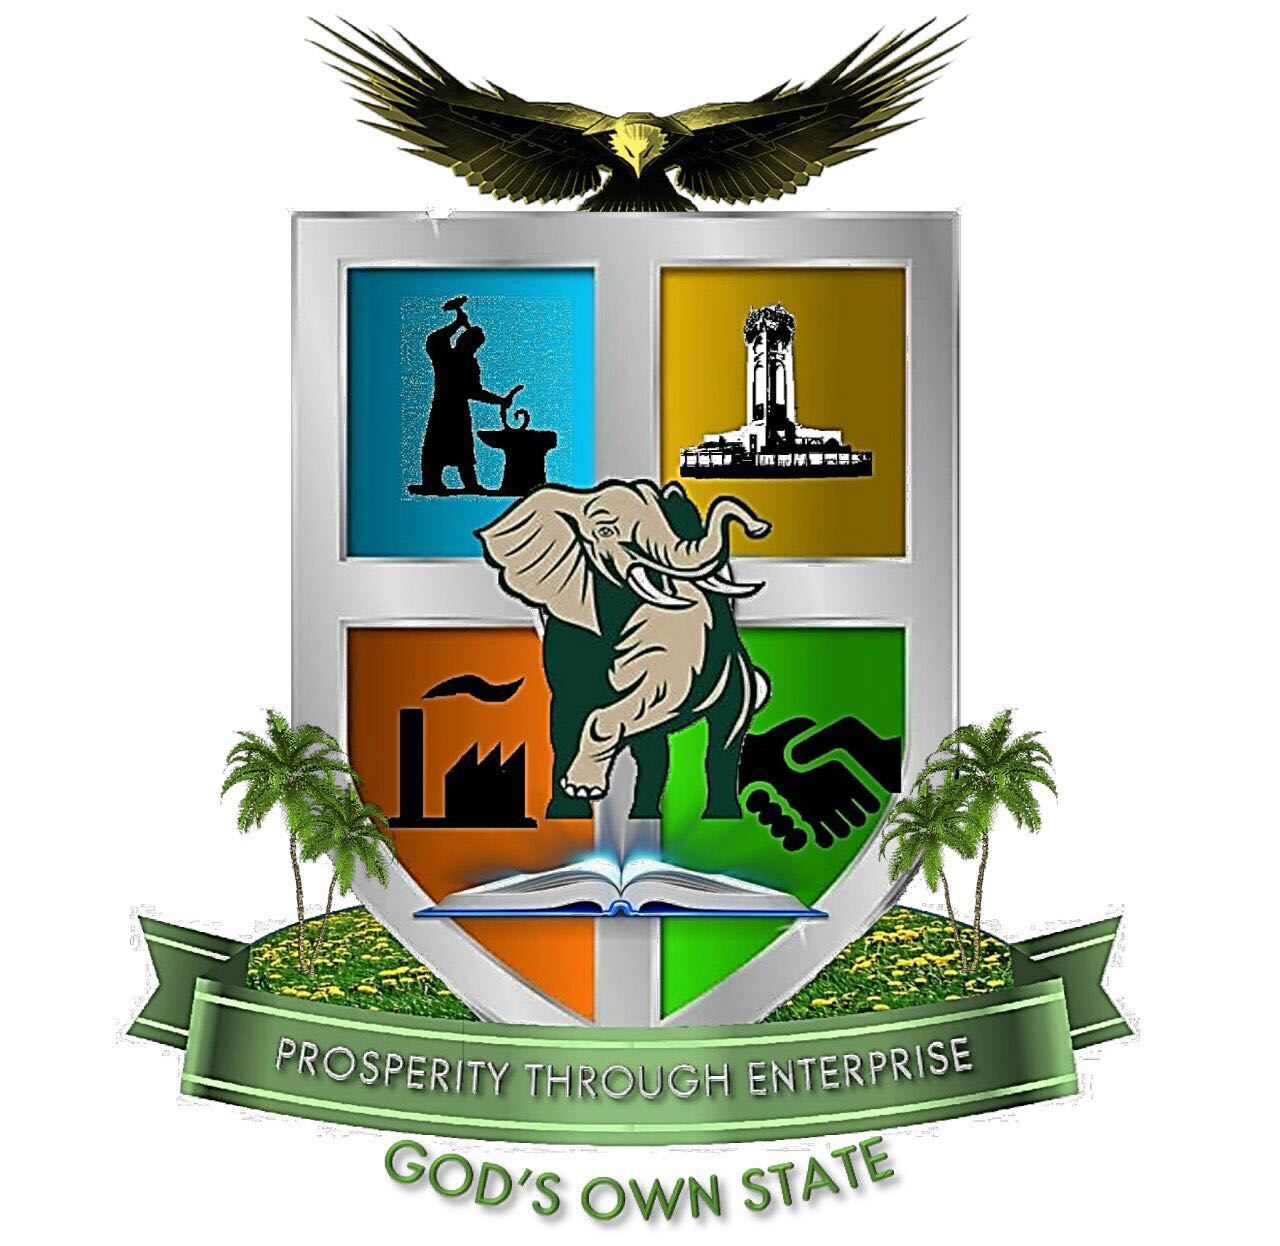 Job Opportunities In Abia State 2018 - Here Are The Jobs You Can Easily Apply For